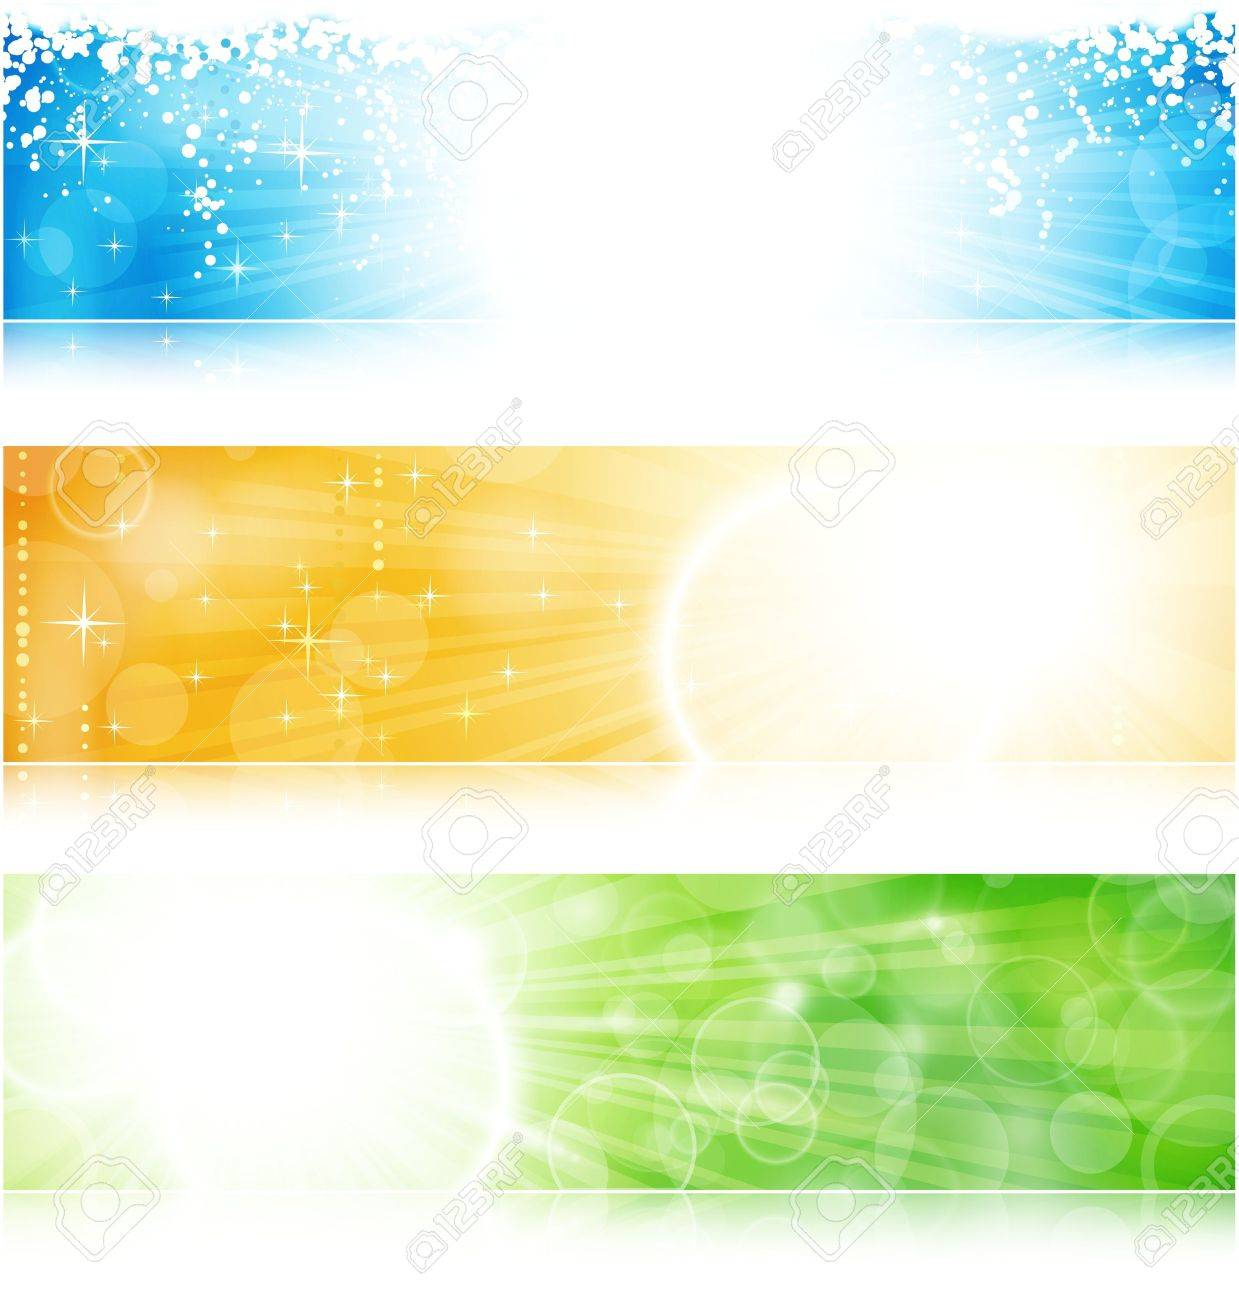 Vector header / banner light burst banner set in green, blue and gold for festive occasions with copyspace. Stock Vector - 10900292